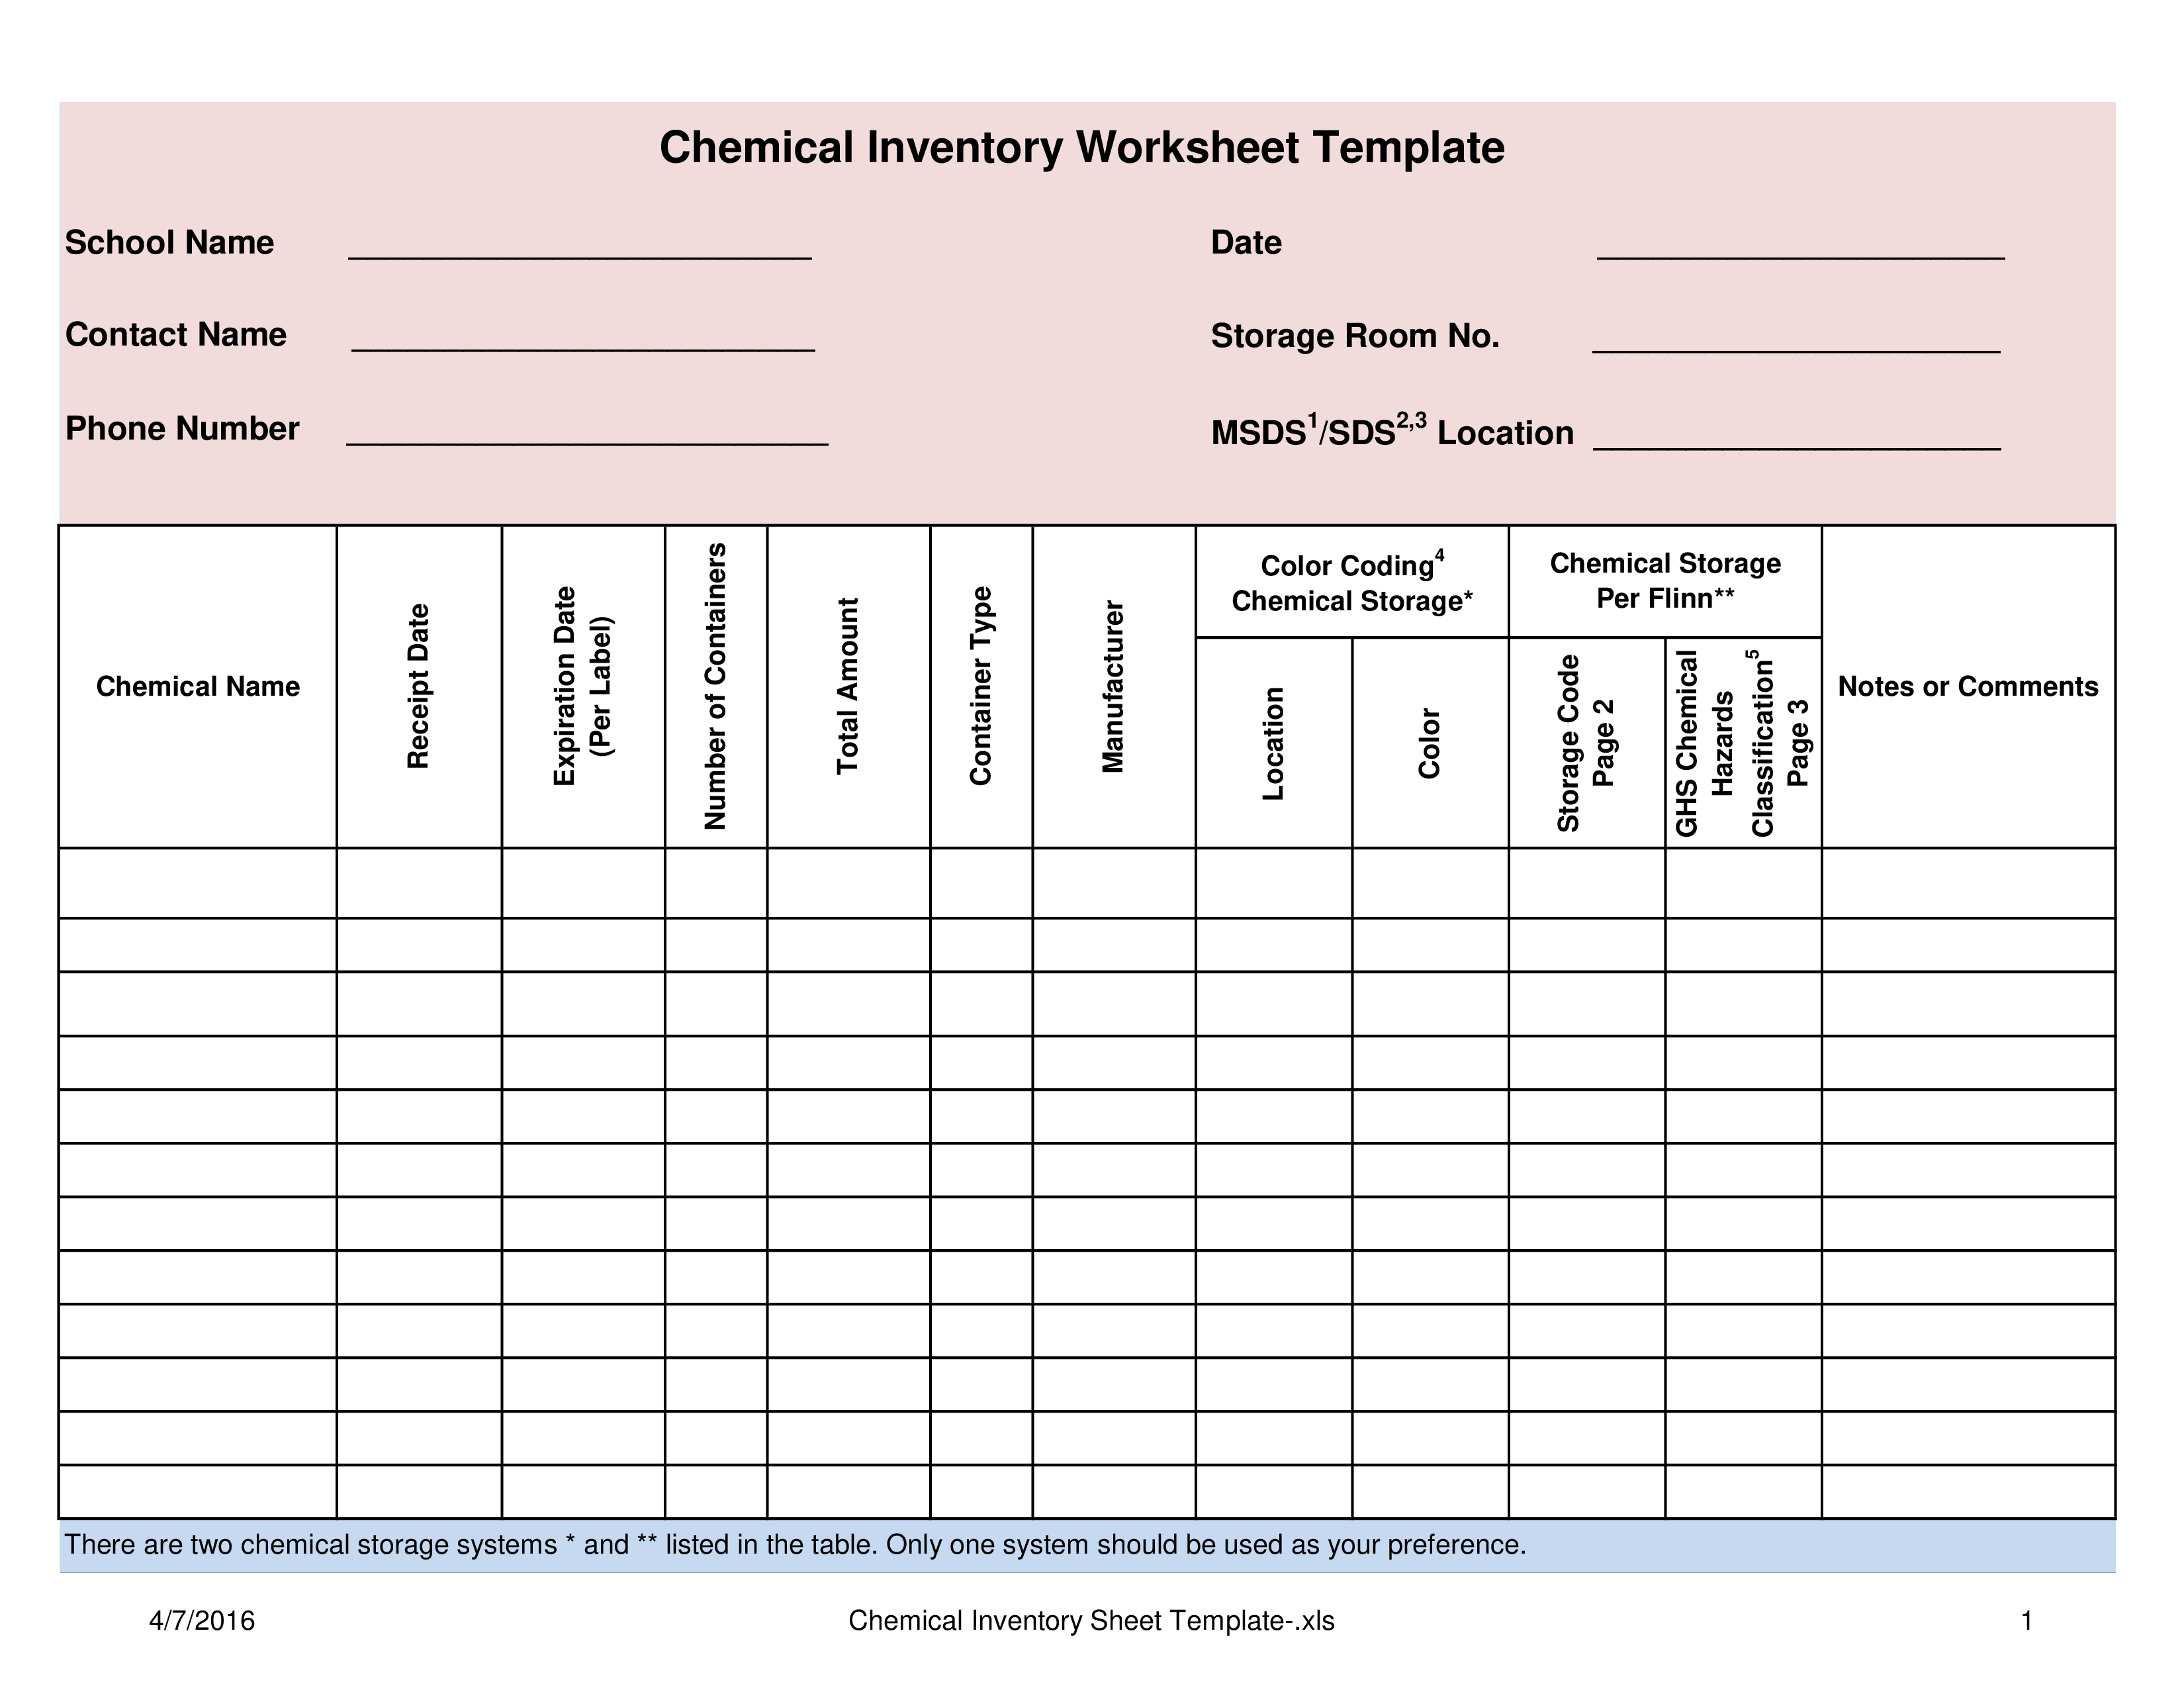 Chemical Inventory Worksheet Template